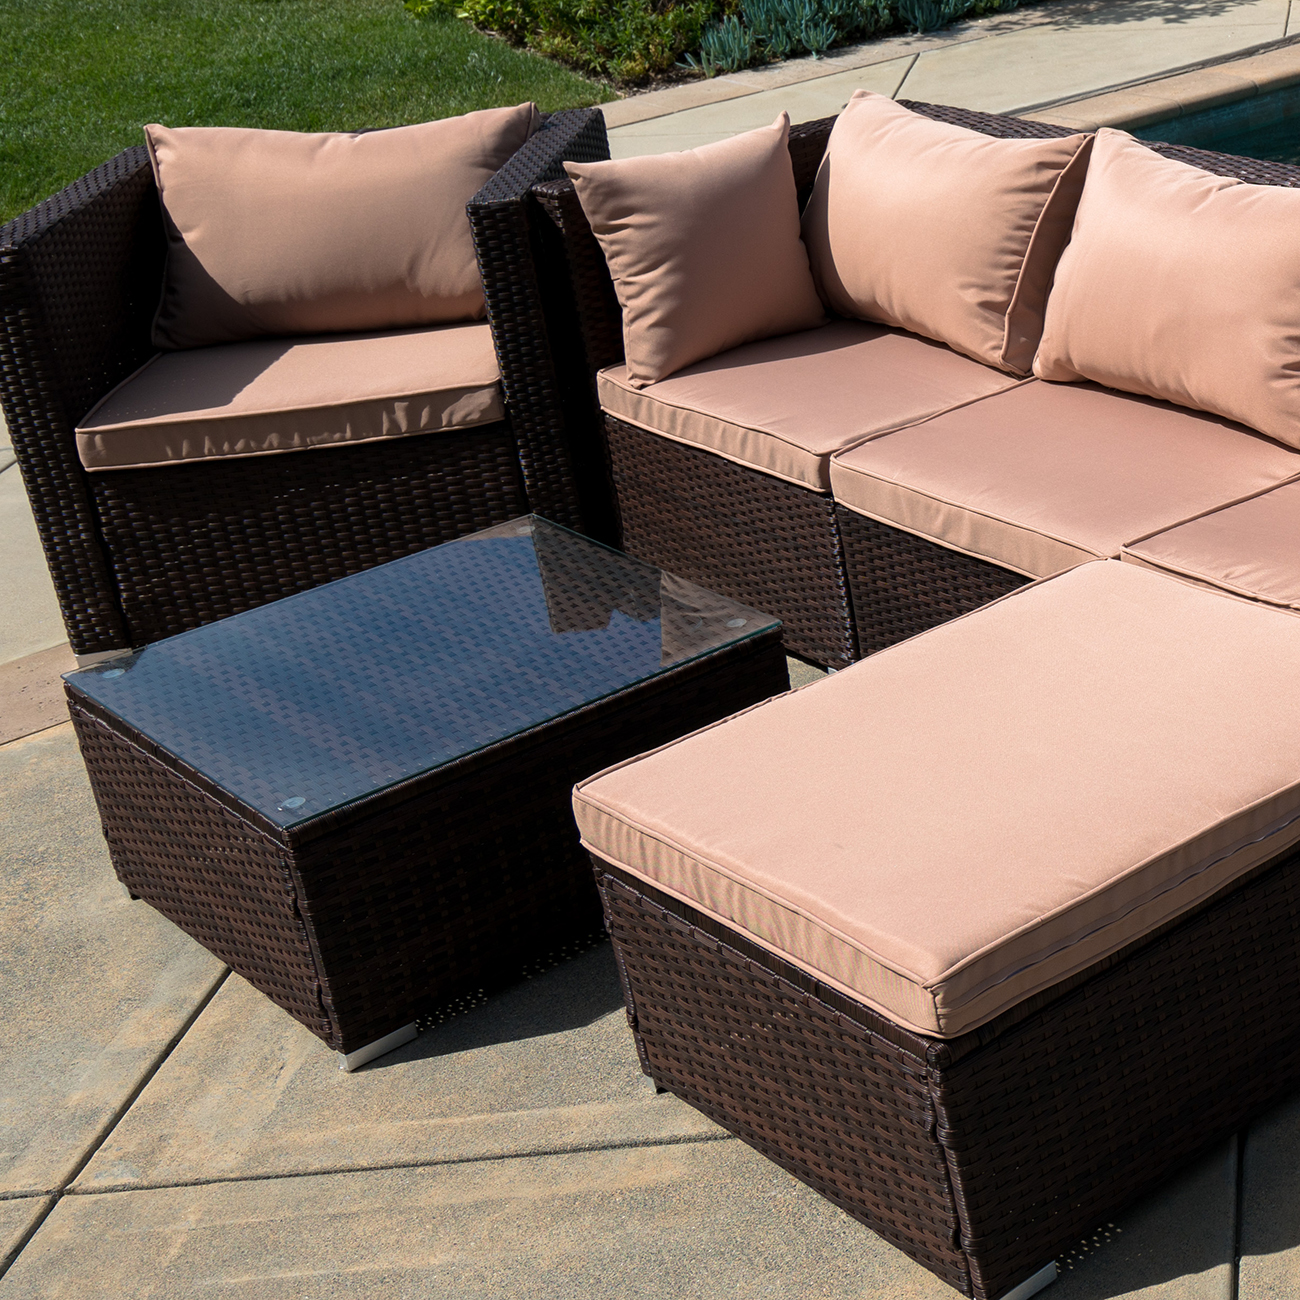 Wicker Rattan Chair 6pc Outdoor Patio Furniture Sectional Rattan Wicker Sofa